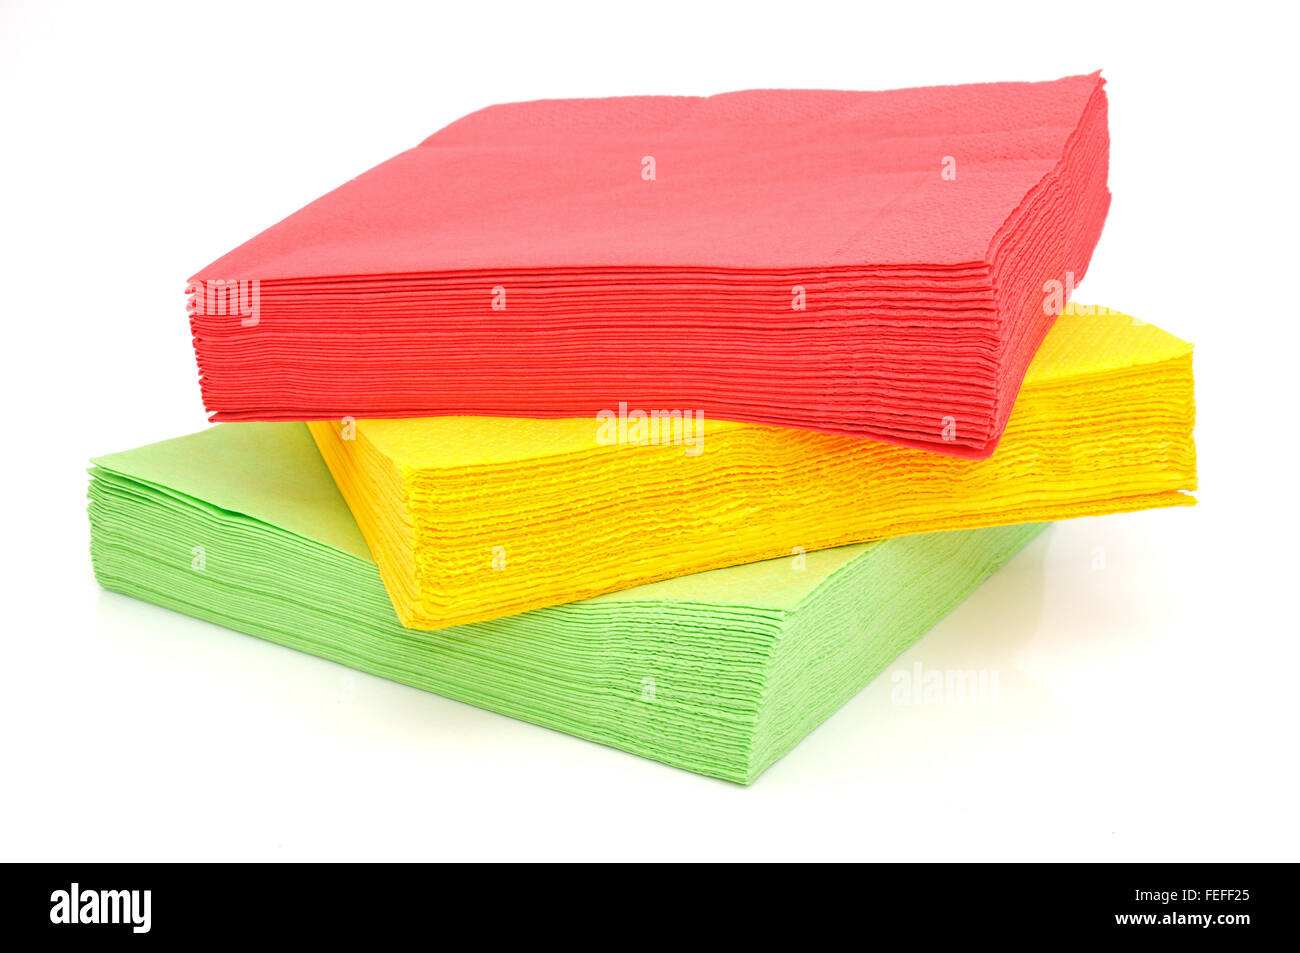 Paper table-napkins isolated on a white background - Stock Image